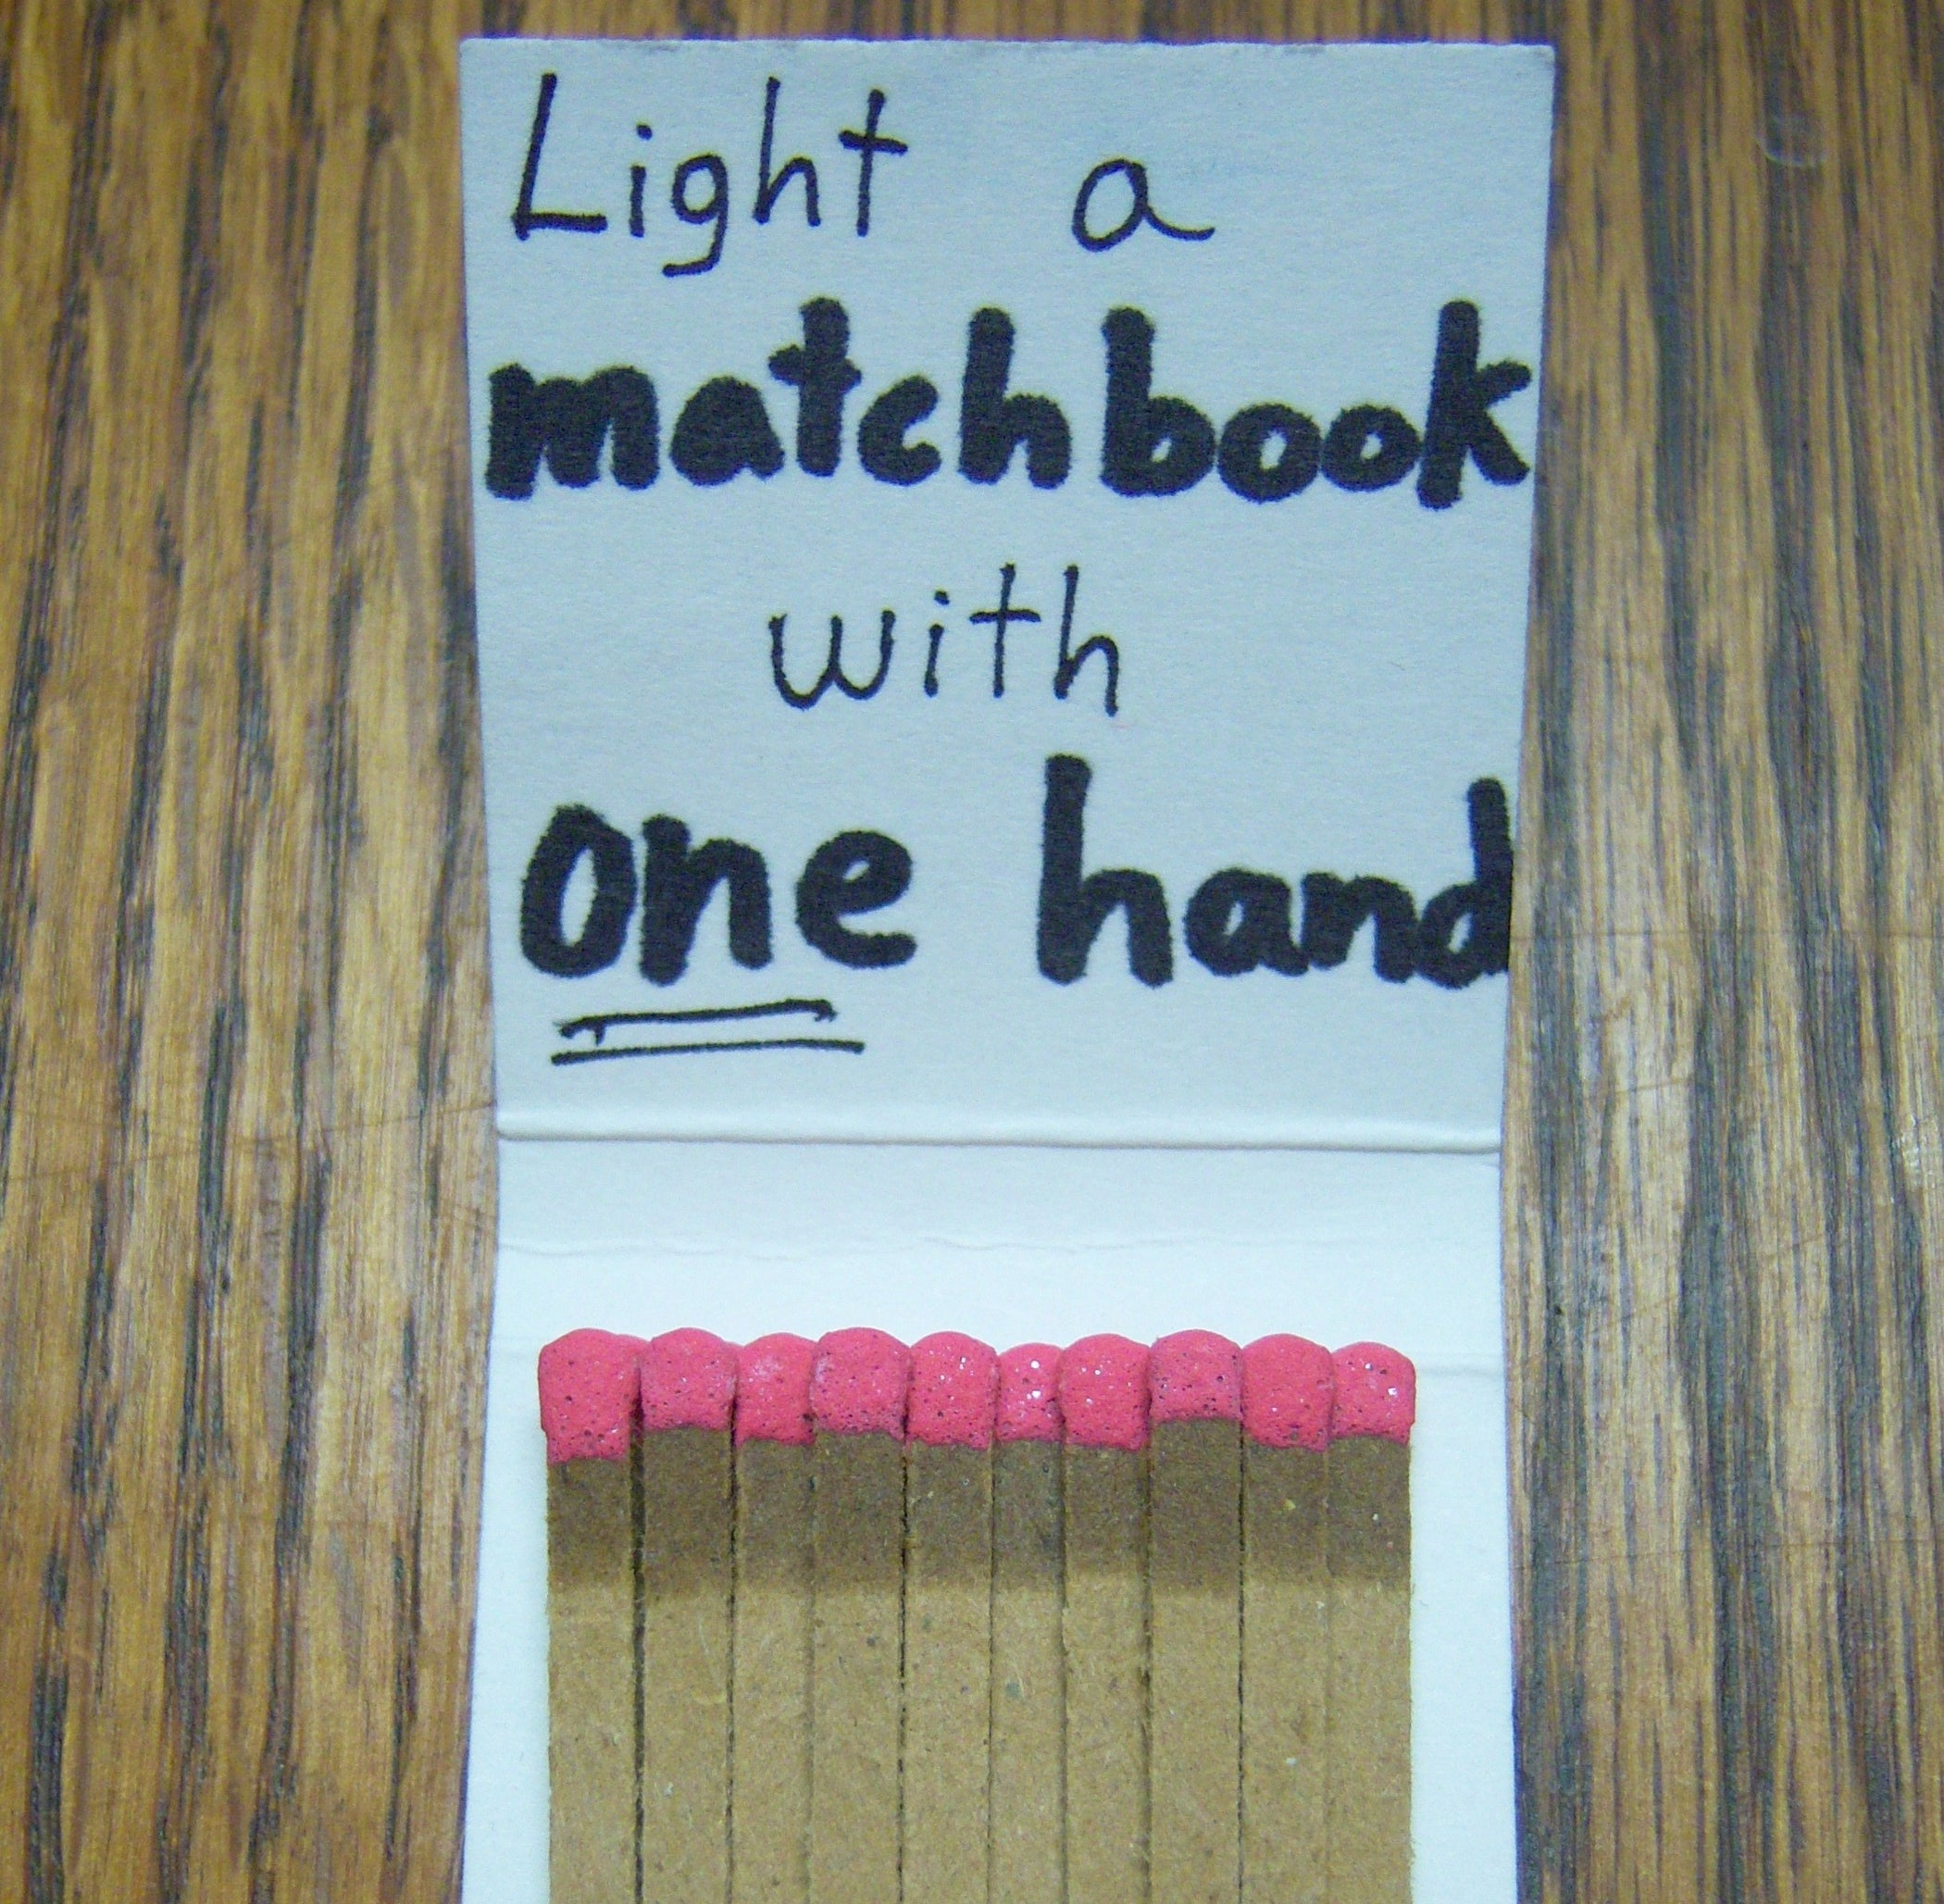 How to Light a Matchbook With One Hand